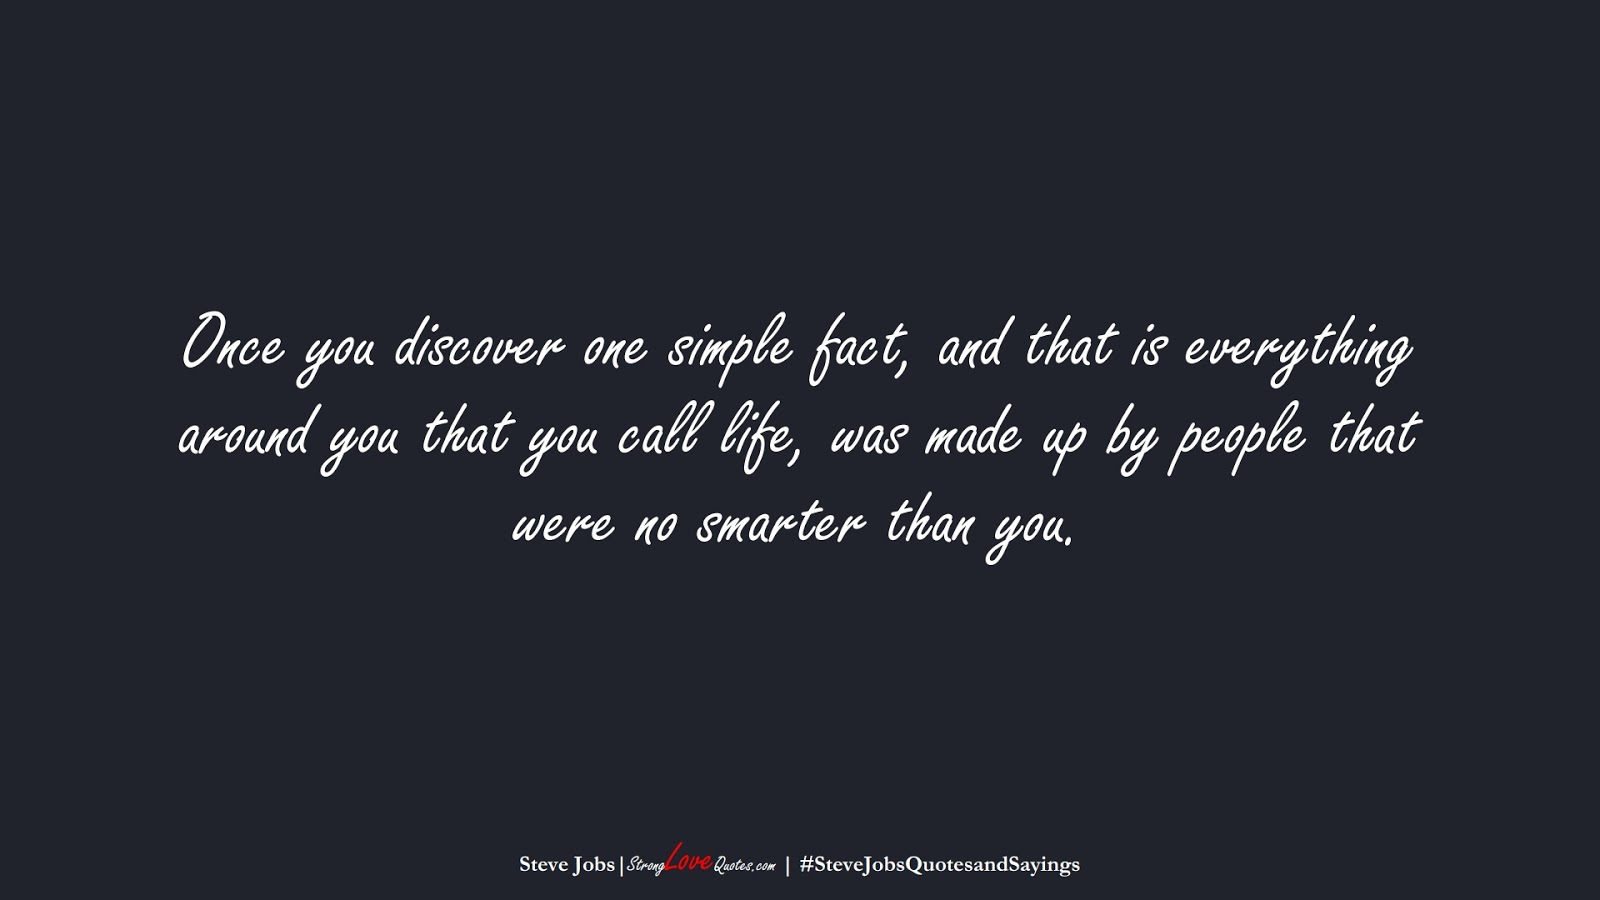 Once you discover one simple fact, and that is everything around you that you call life, was made up by people that were no smarter than you. (Steve Jobs);  #SteveJobsQuotesandSayings